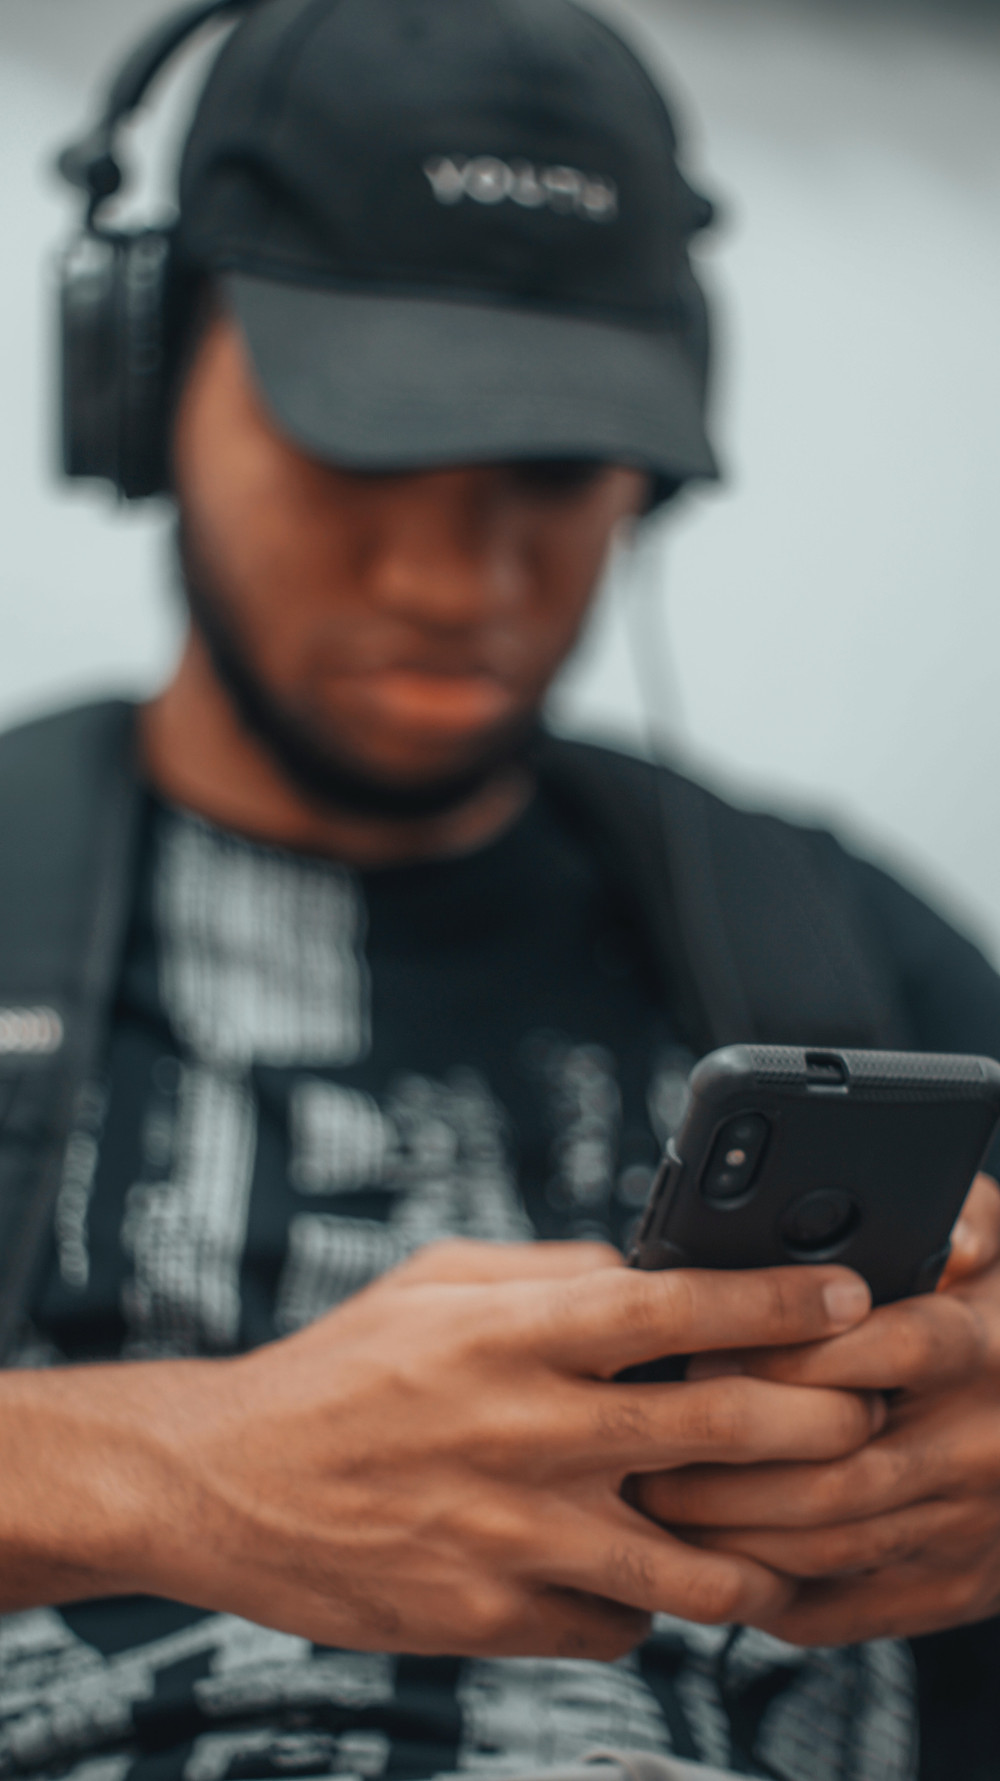 A young man using his phone